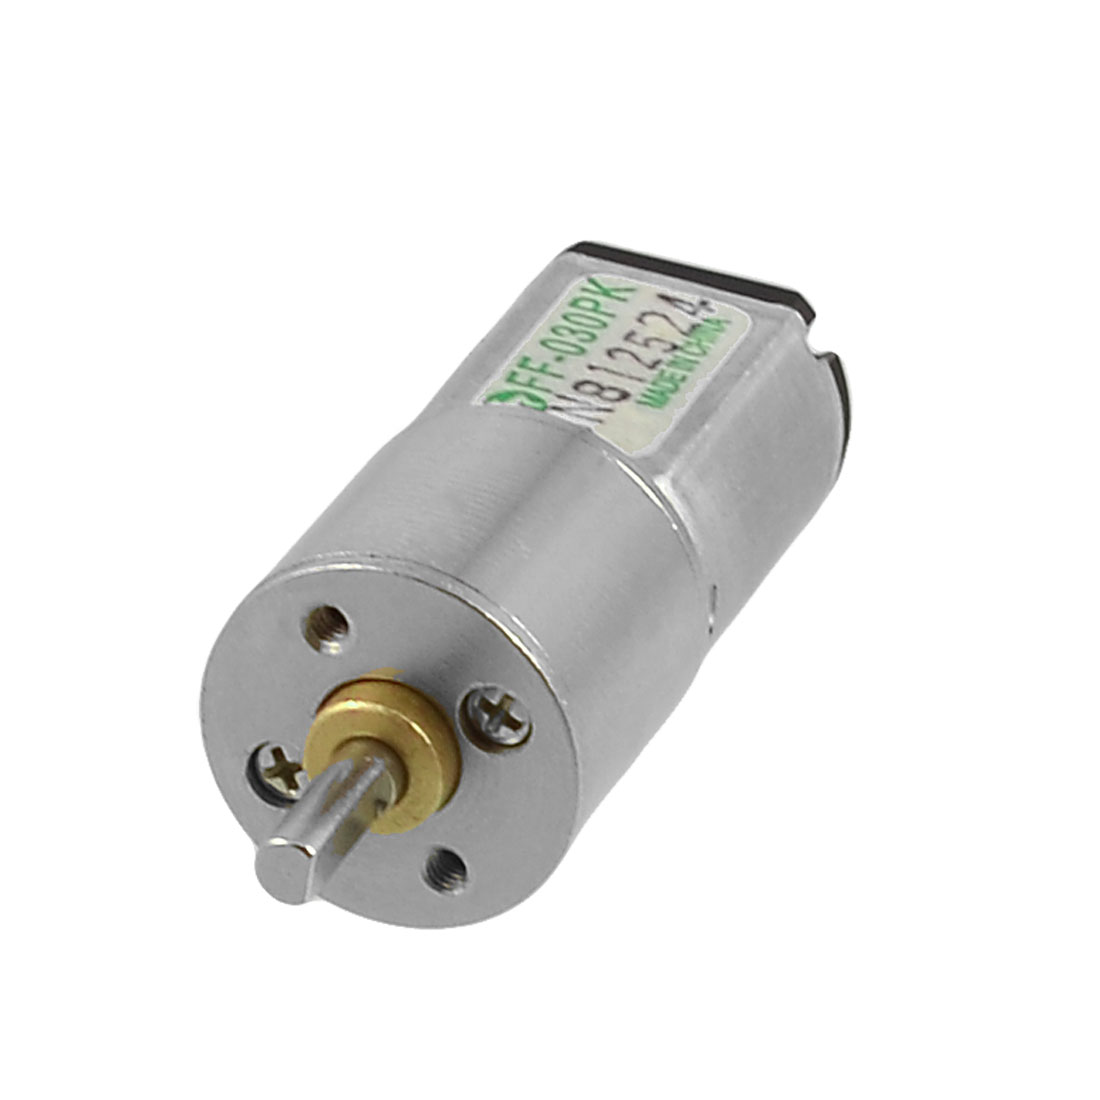 Electric 50RPM Output Speed 3V 0.35A 16GA 2-Terminals DC Geared Motor